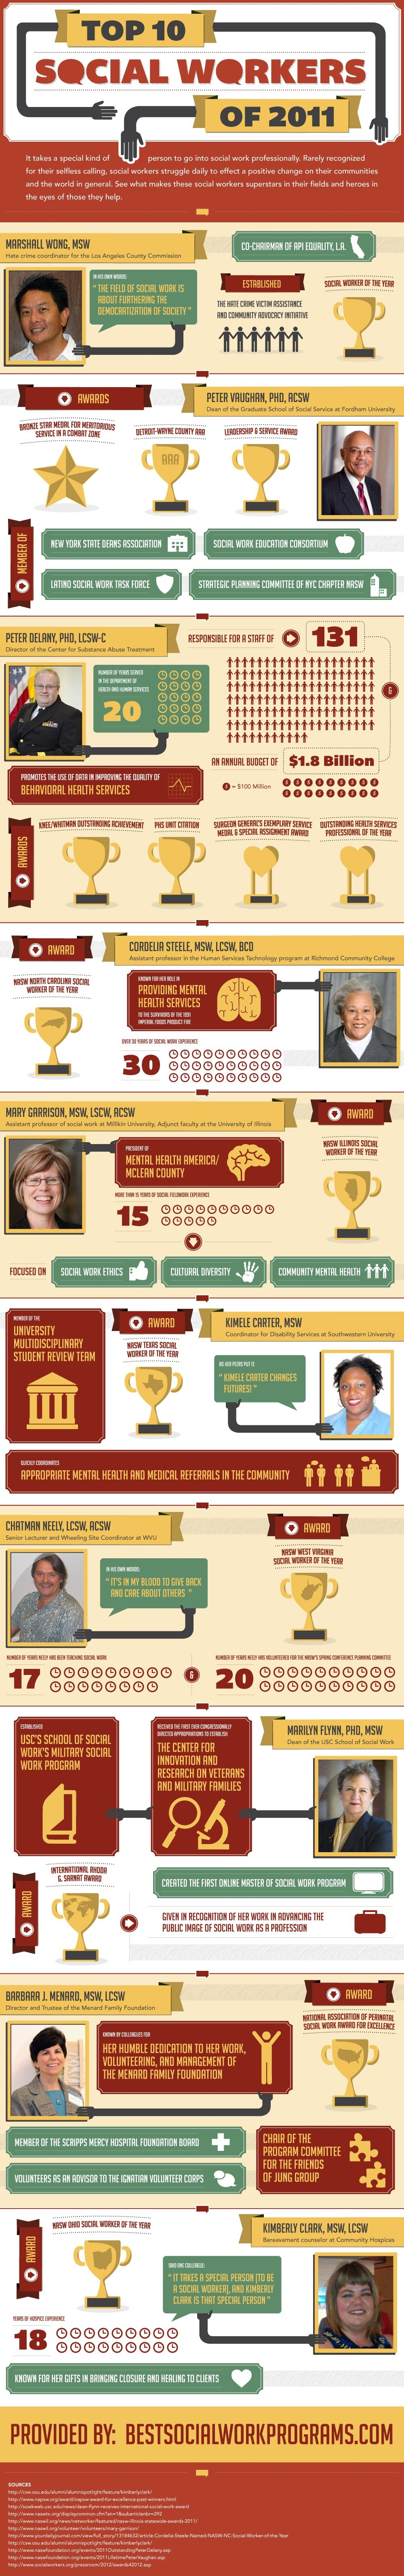 Top 10 Social Workers of 2011 [Infographic] Social